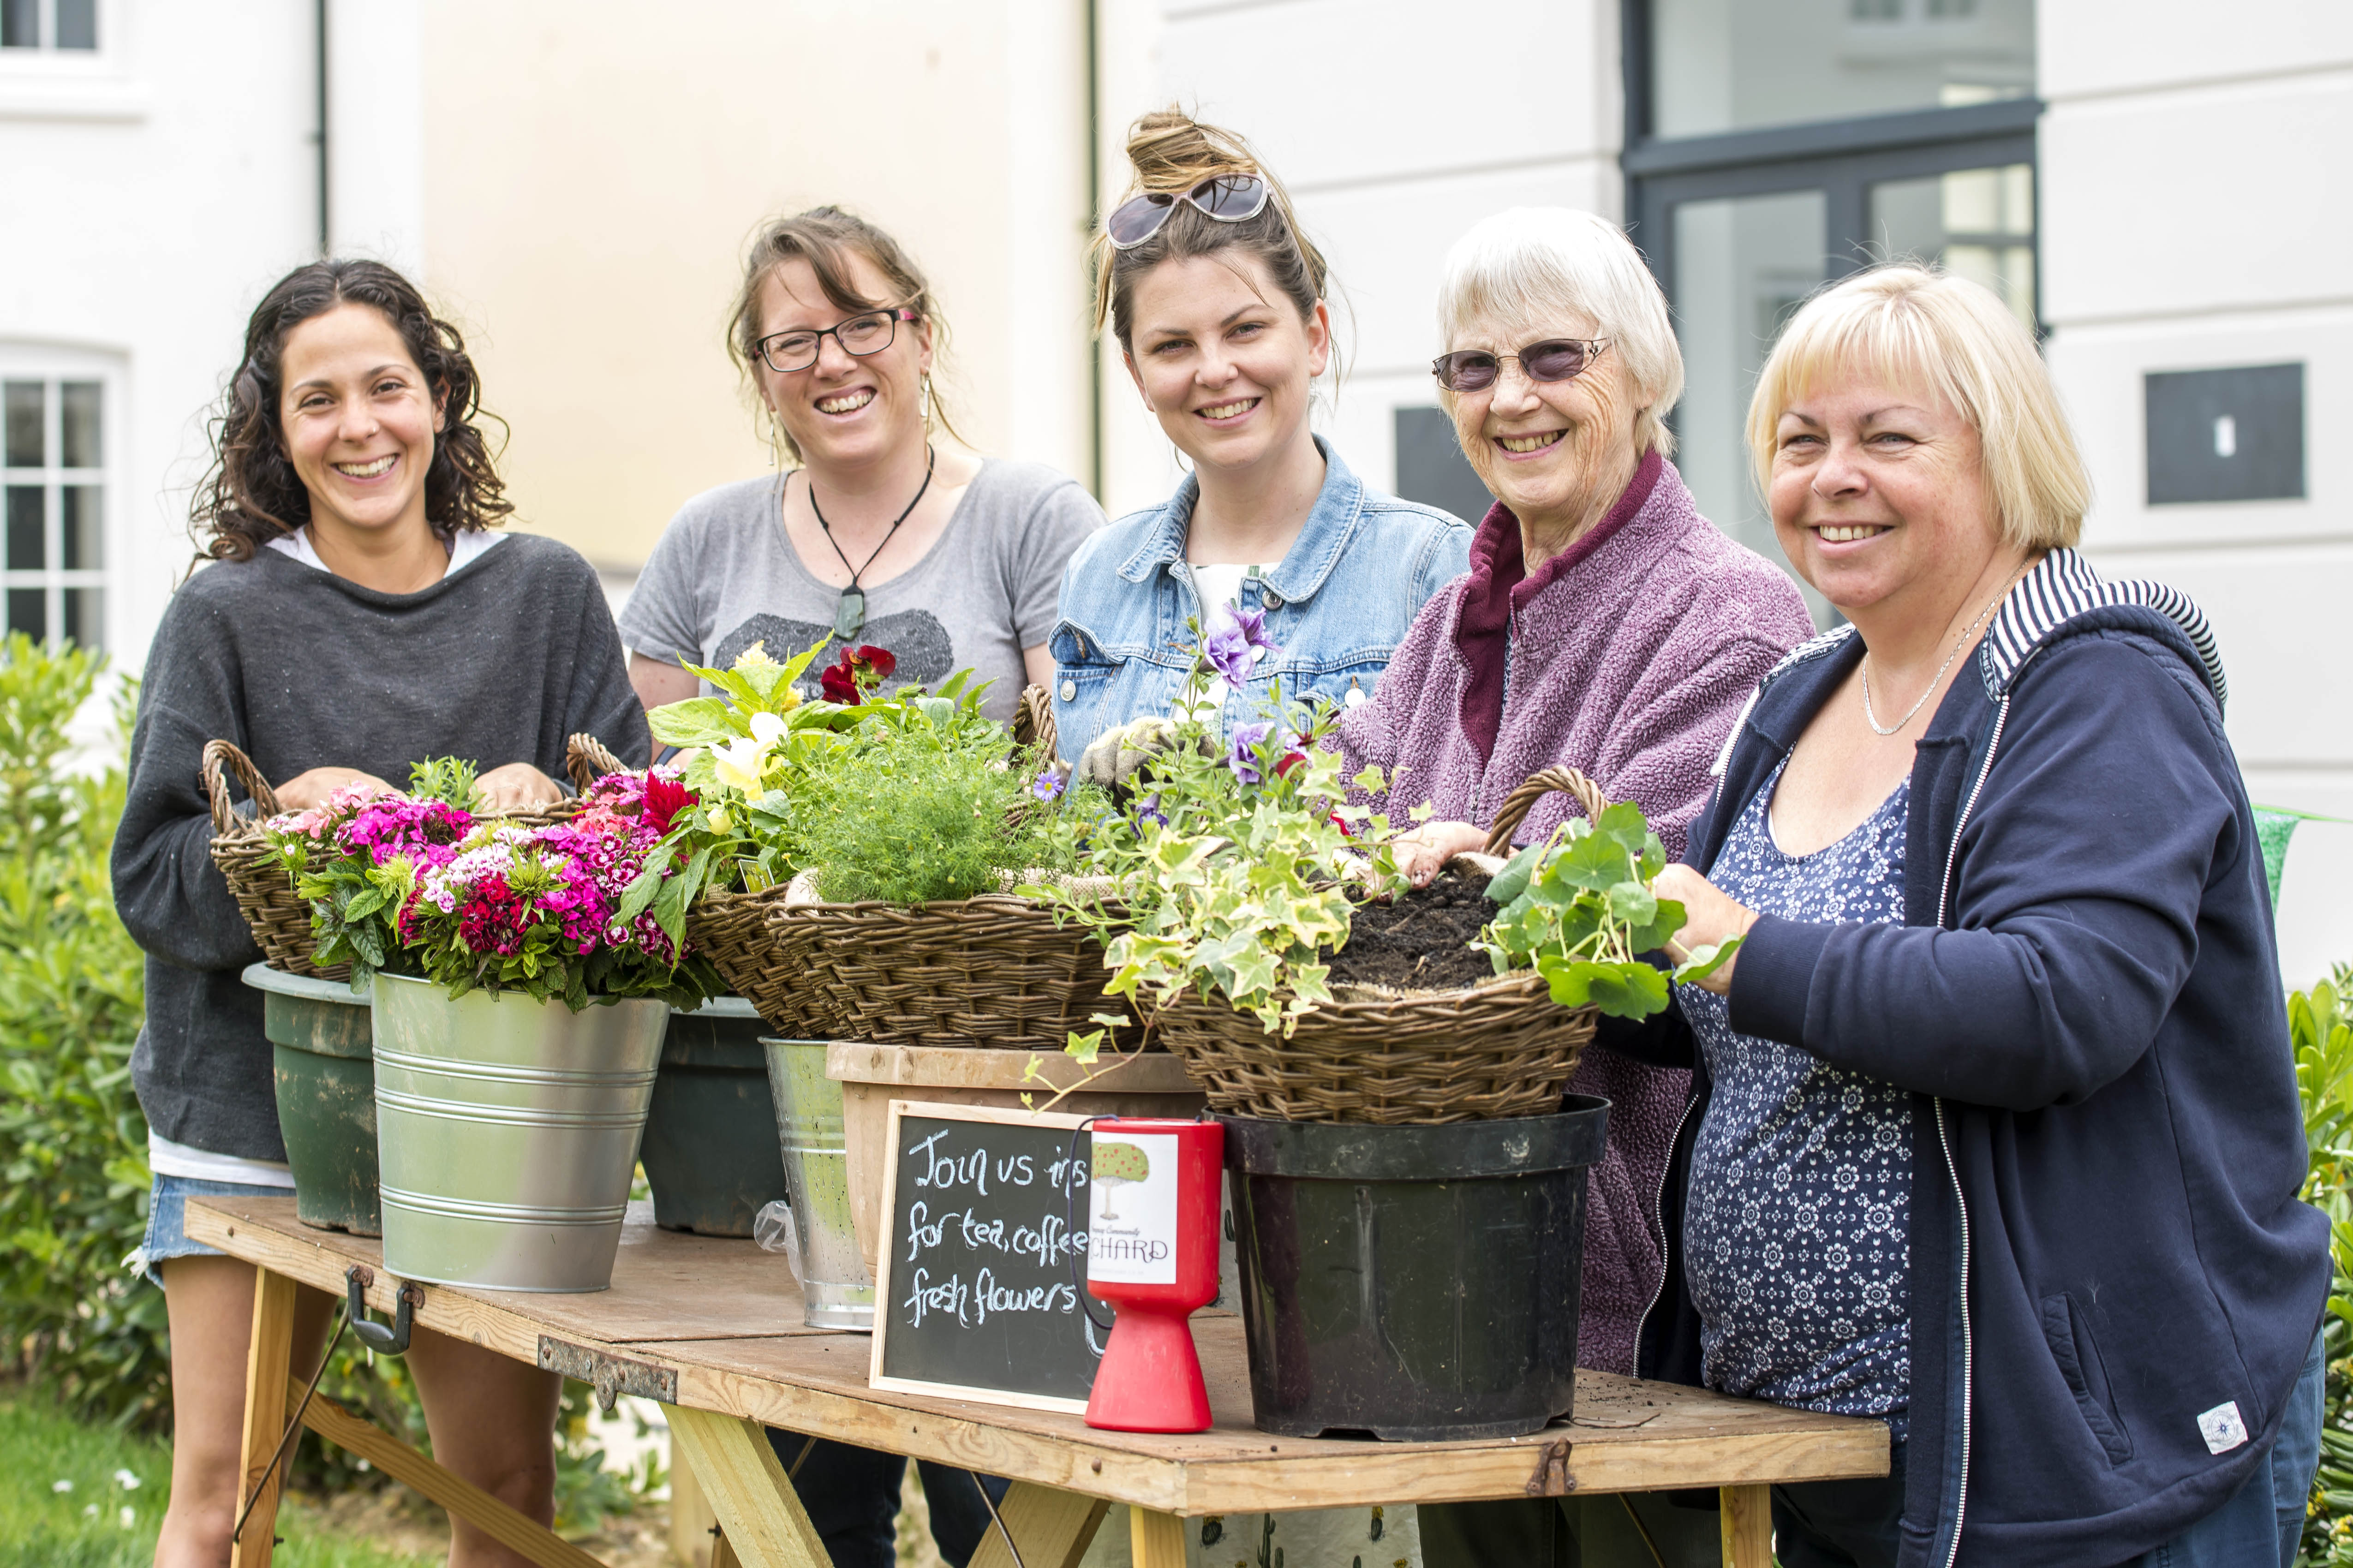 Lorena Viladomat, Lyn Trewella and Natalie Frost from Newquay Community Orchard with residents Hazel Sadler and Barbara May